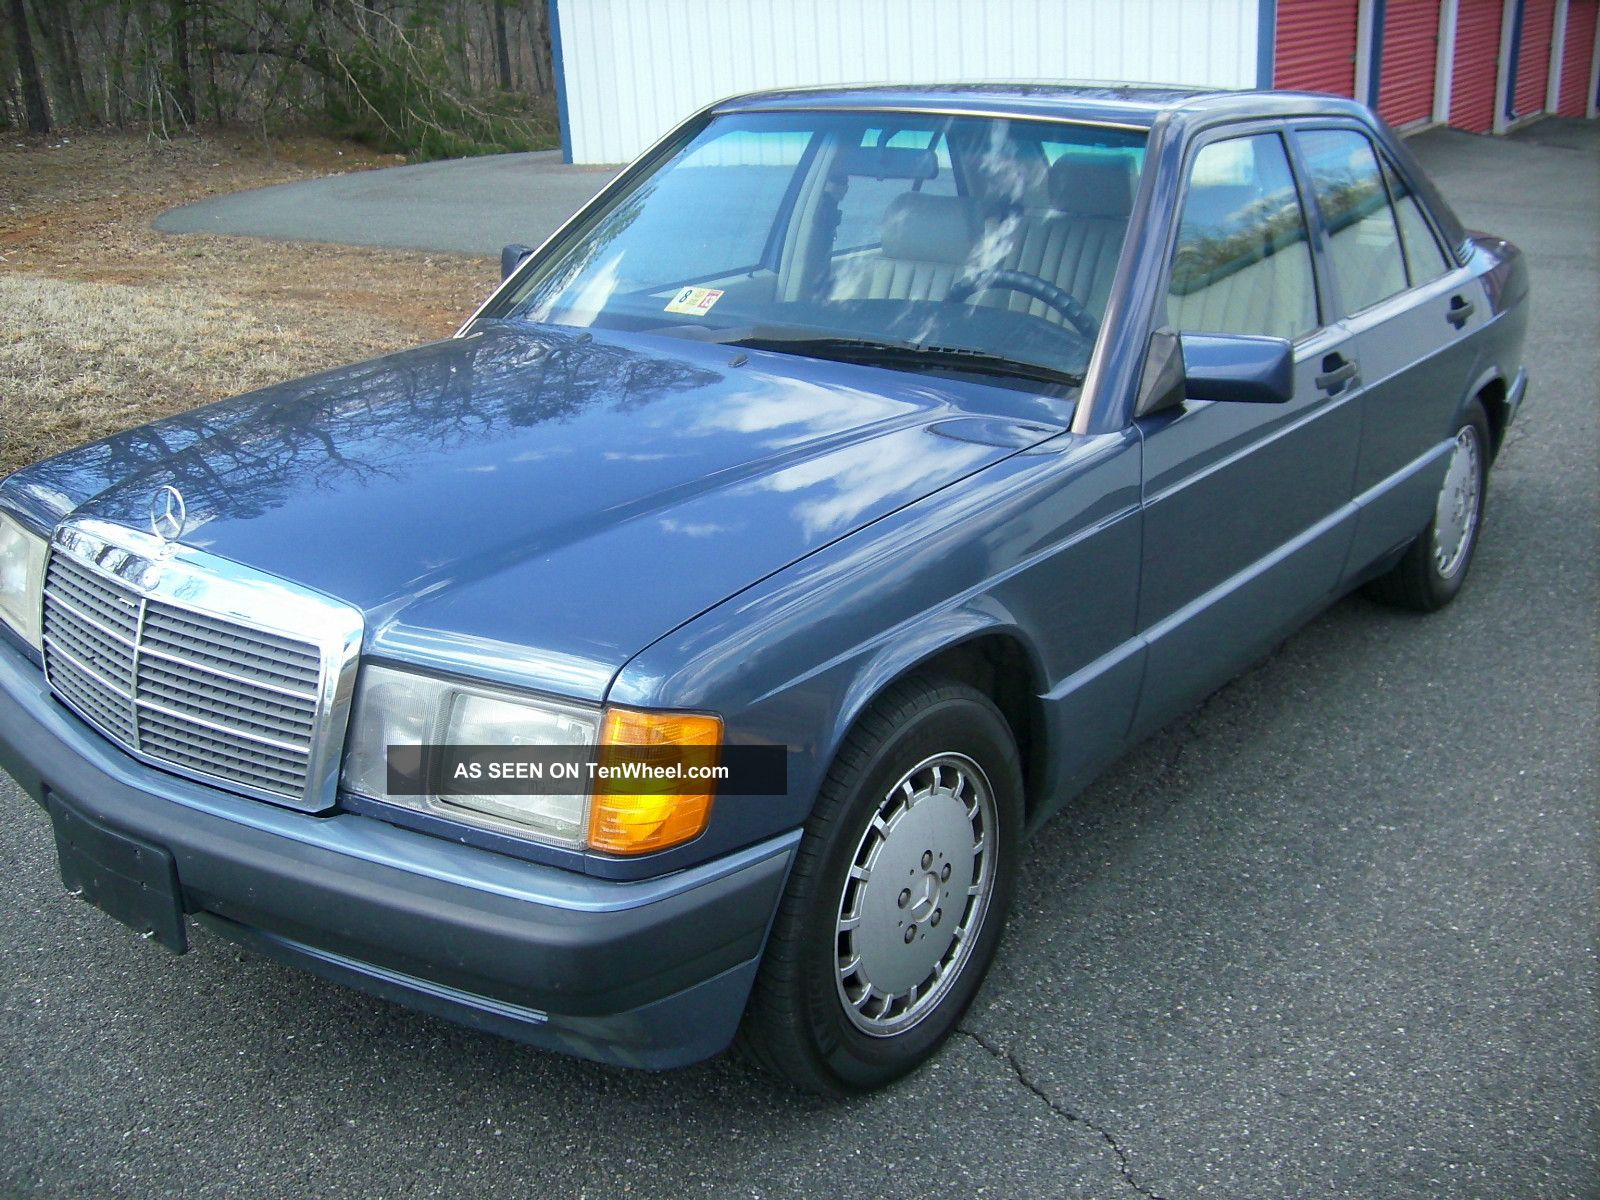 1993 mercedes benz 190e 2 6 sedan 4 door 2 6l for 1993 mercedes benz 190e 2 6